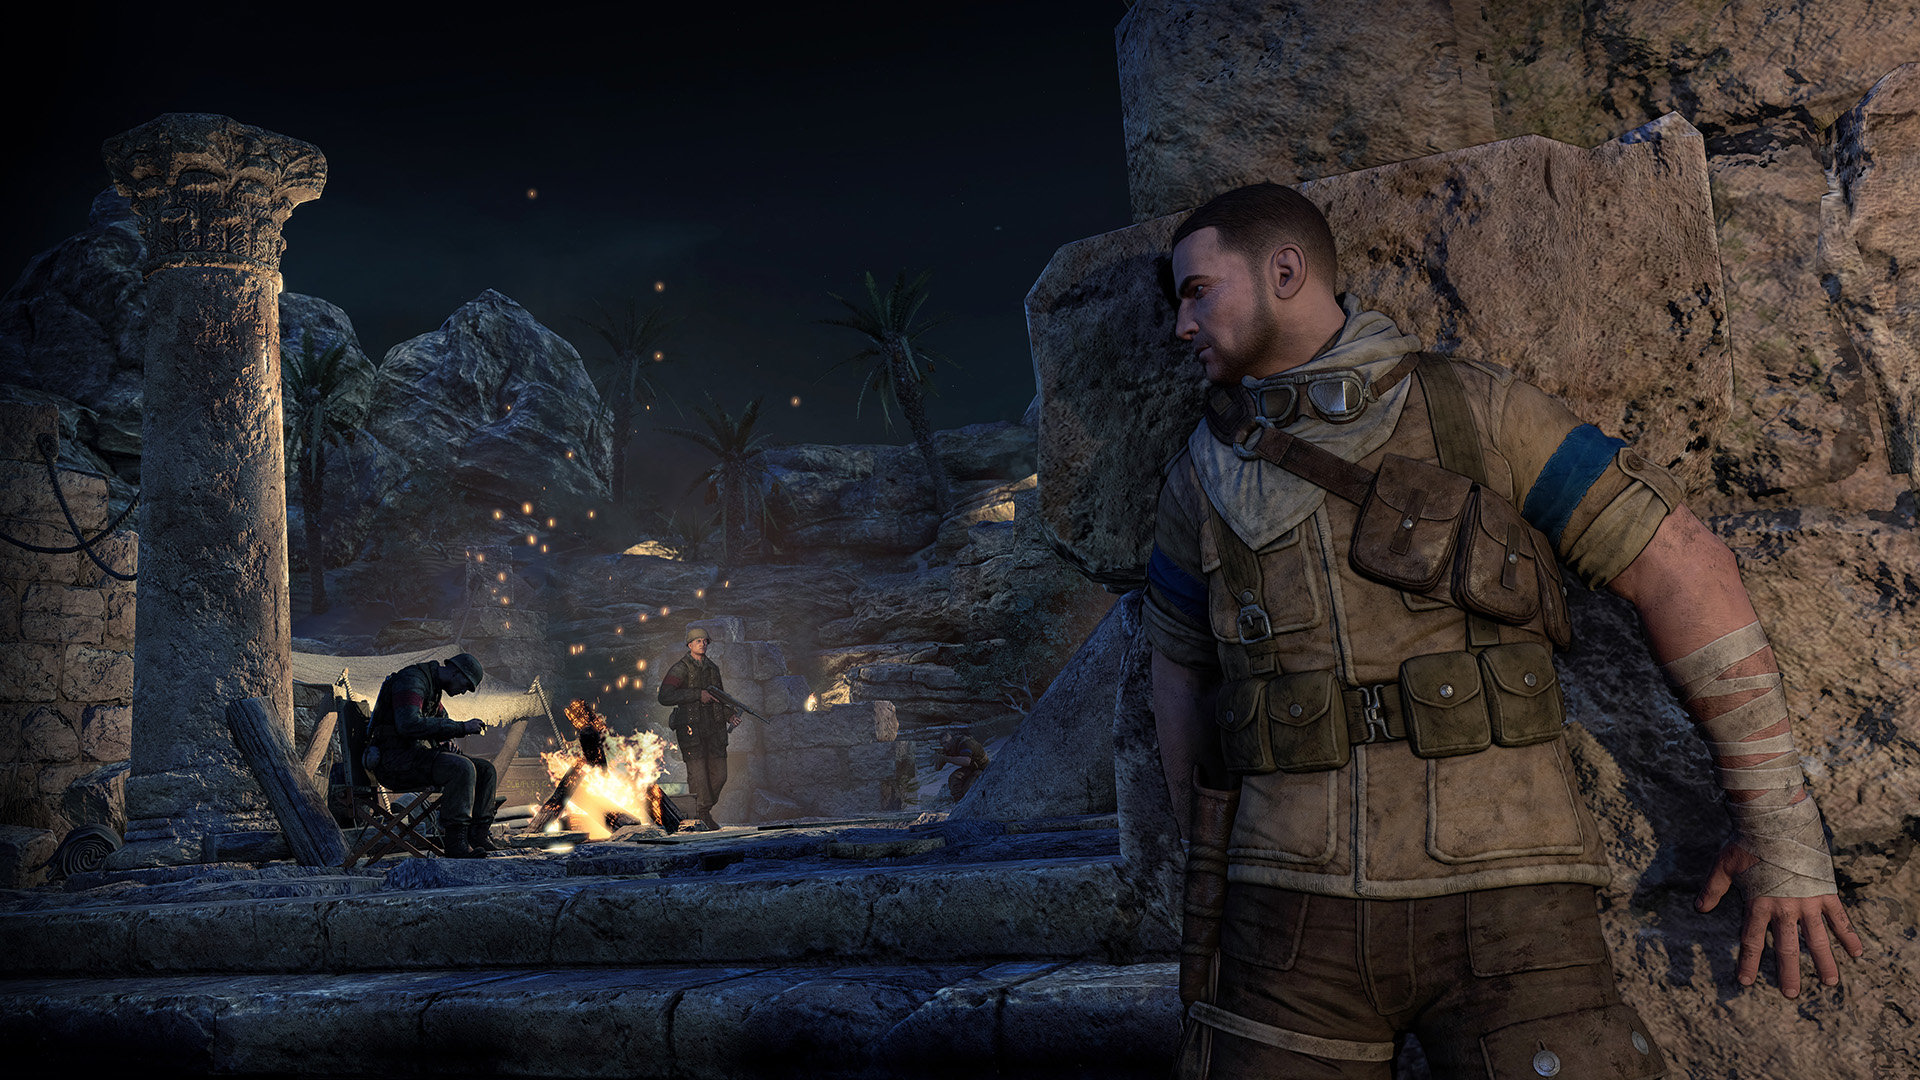 sniper-elite-3-screenshot-03-ps4-us-12ju